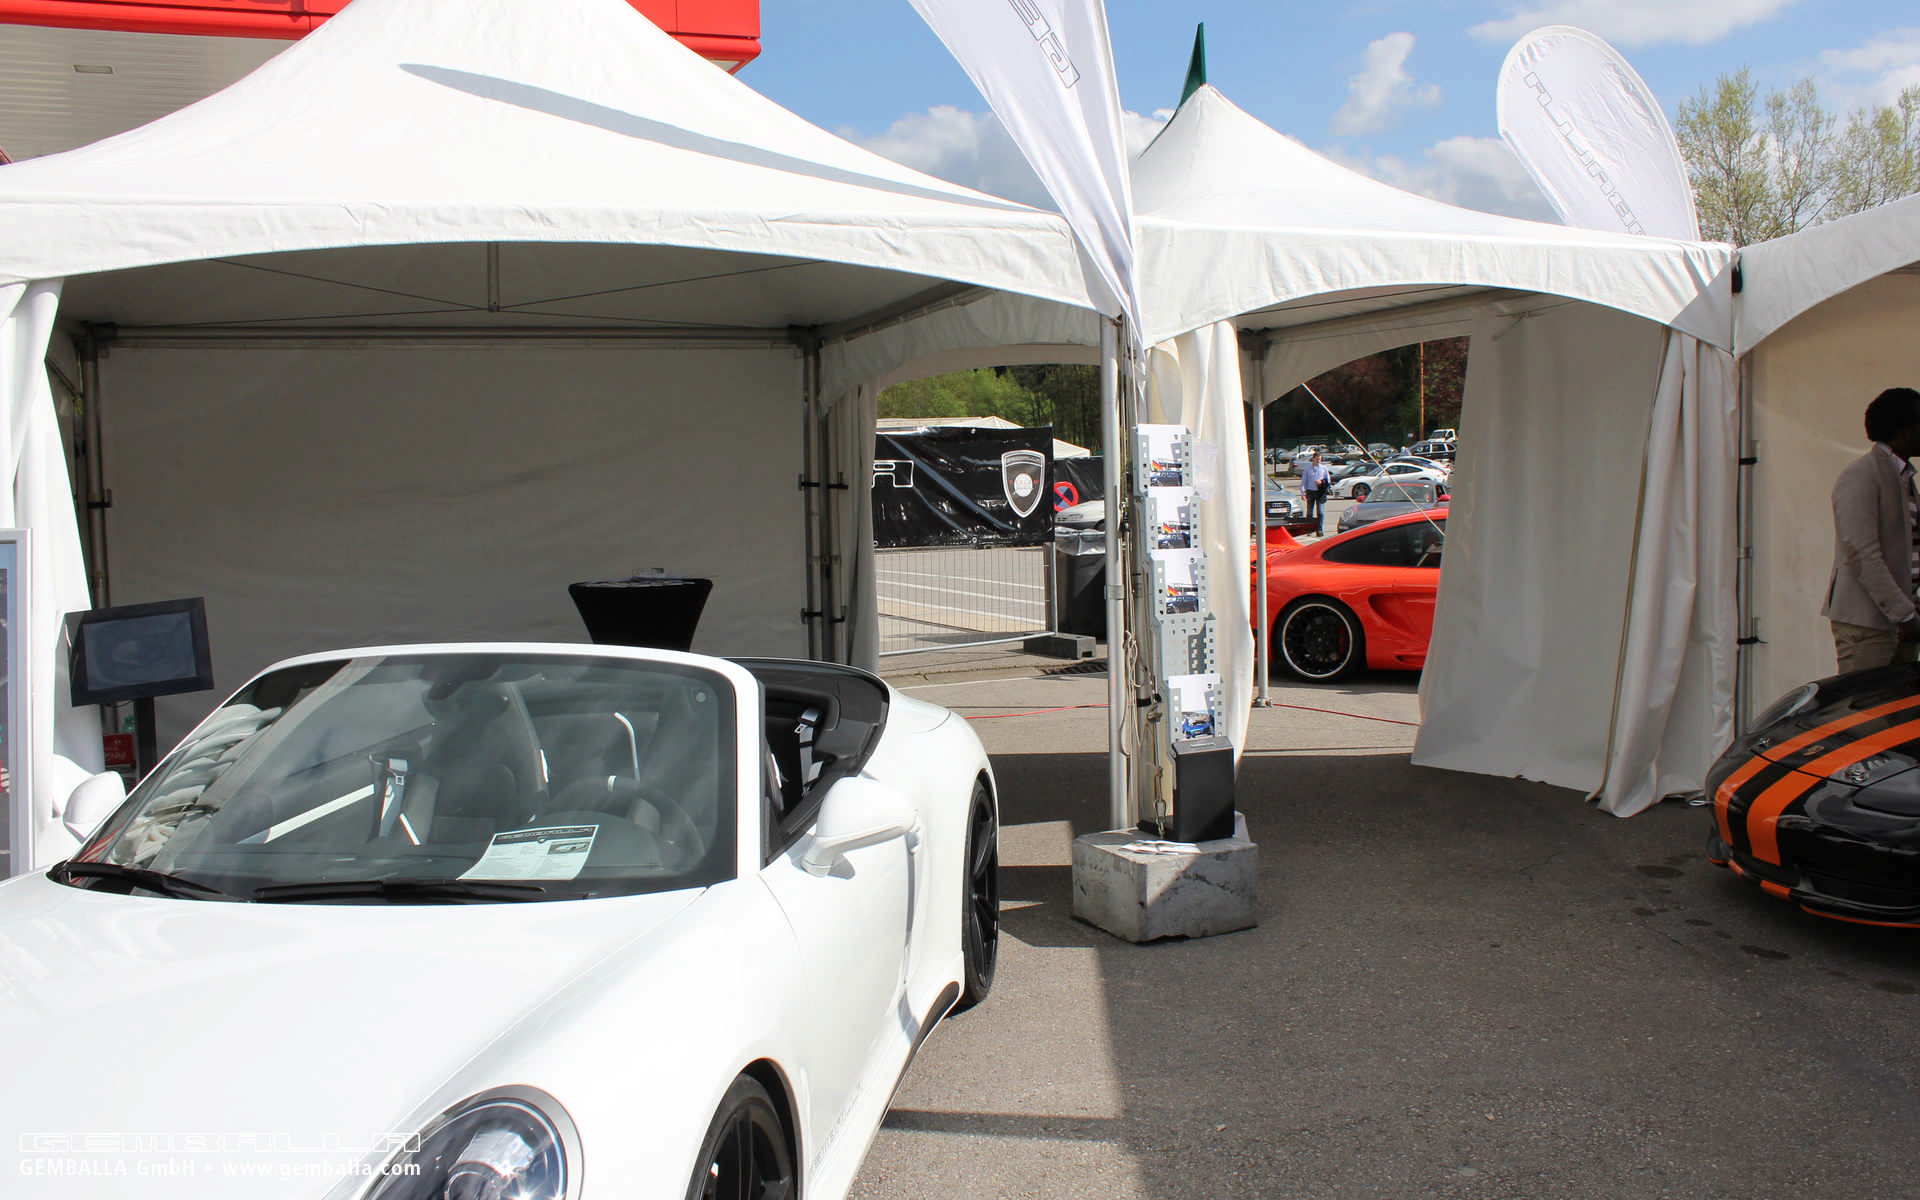 gemballa_gmbh_event_spa_2013_012